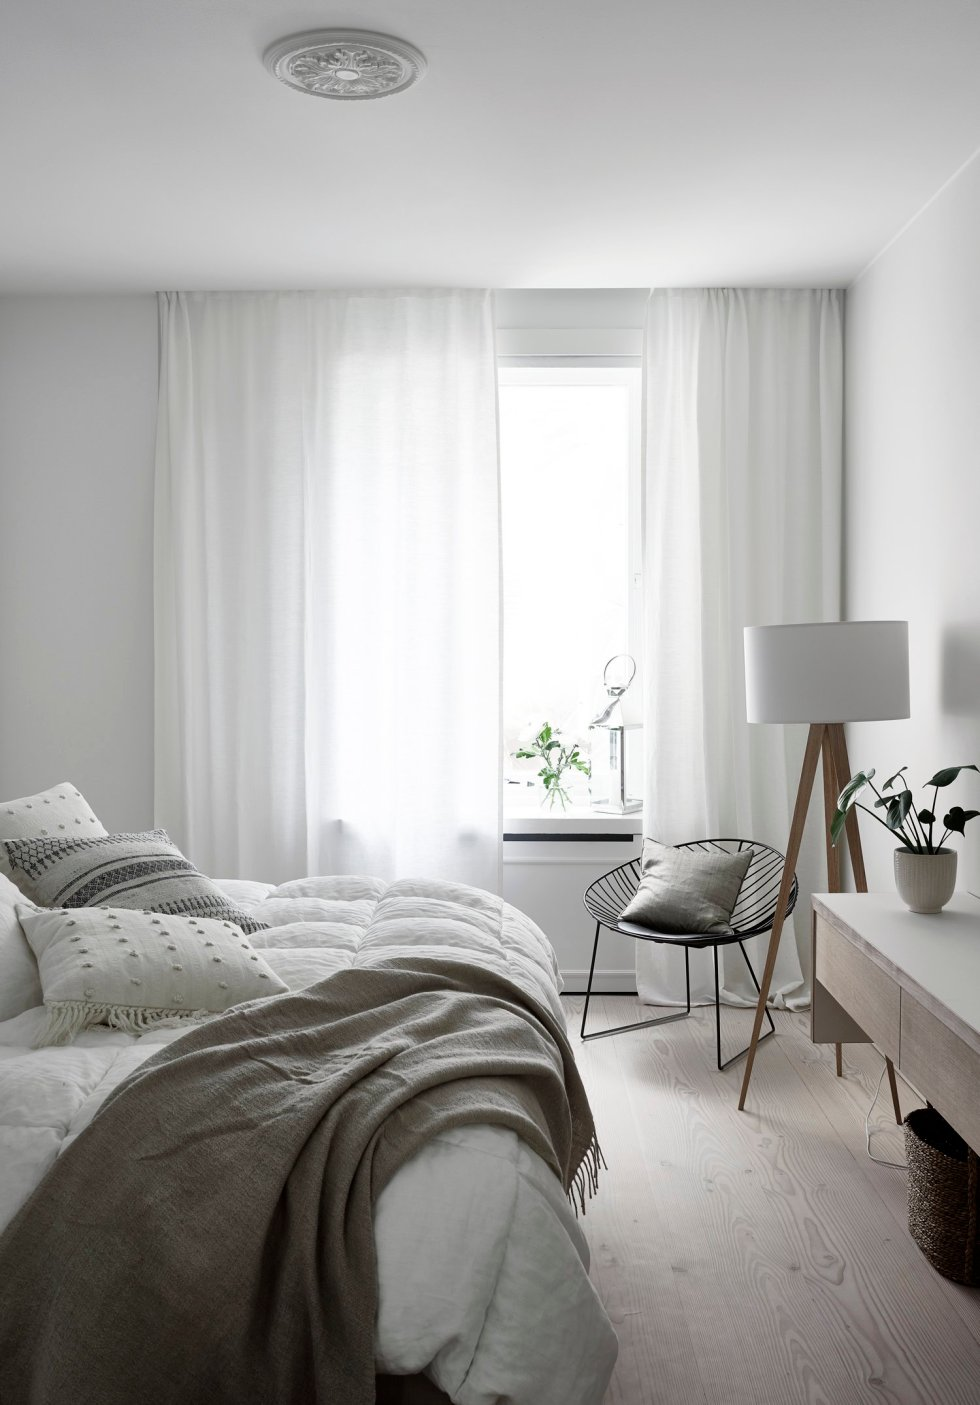 a serene and clean Scandinavian bedroom with stylish furniture, a floor lamp, a black chair and neutral bedding